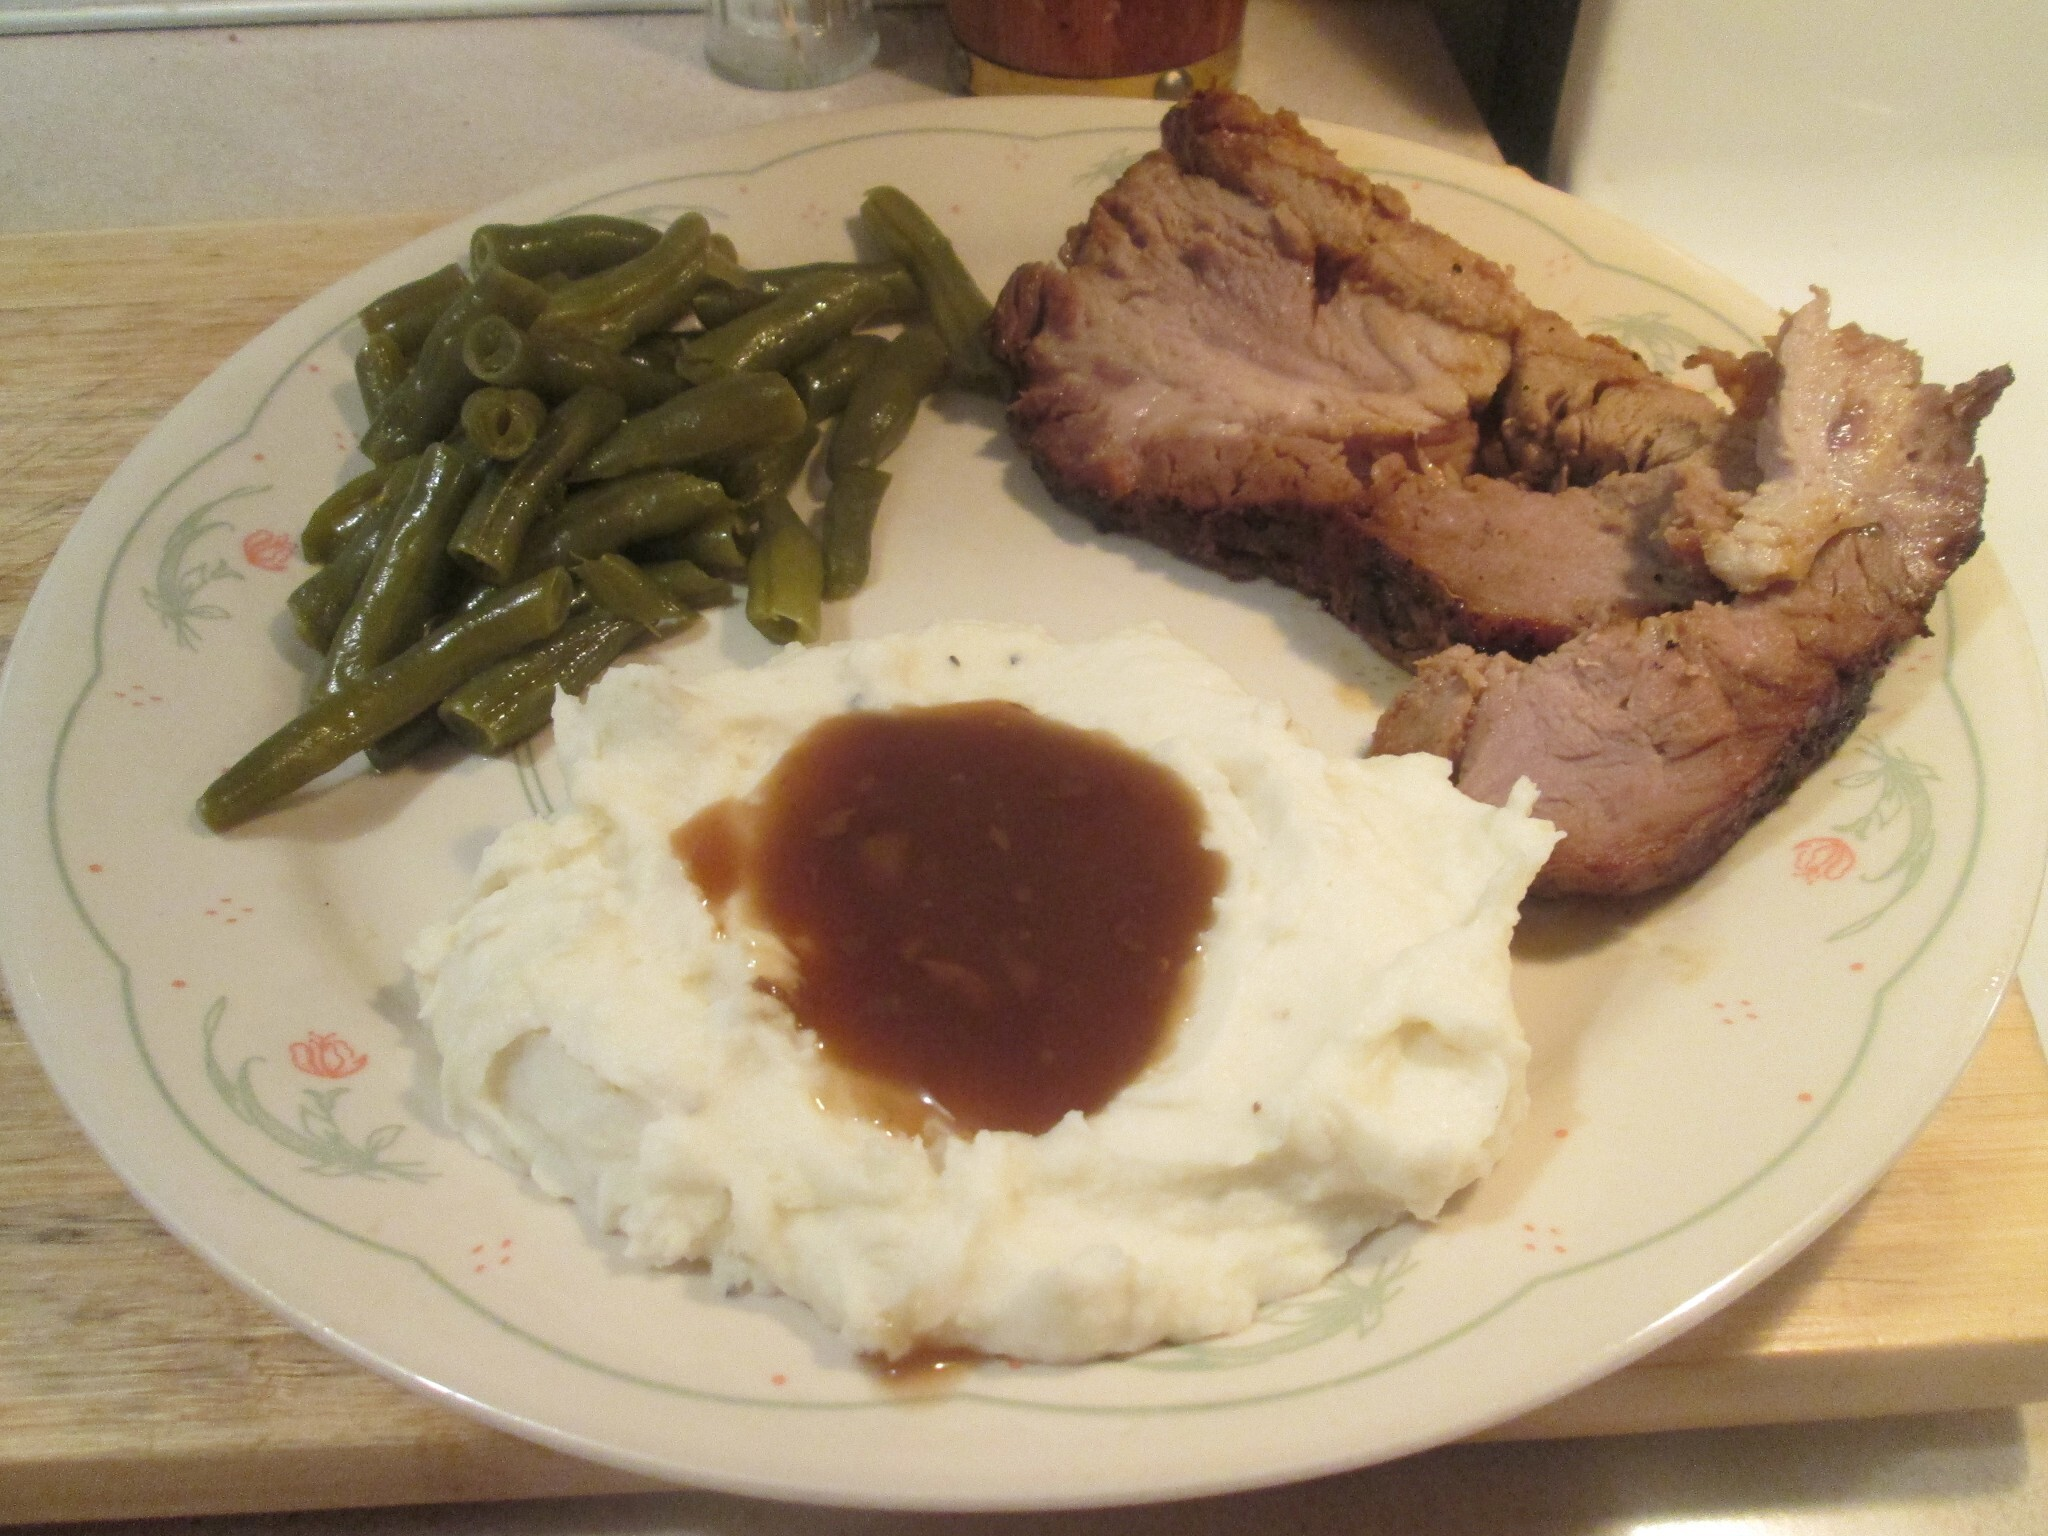 Pork Loin Boneless Roast w/ Green Beans and Mashed Potatoes